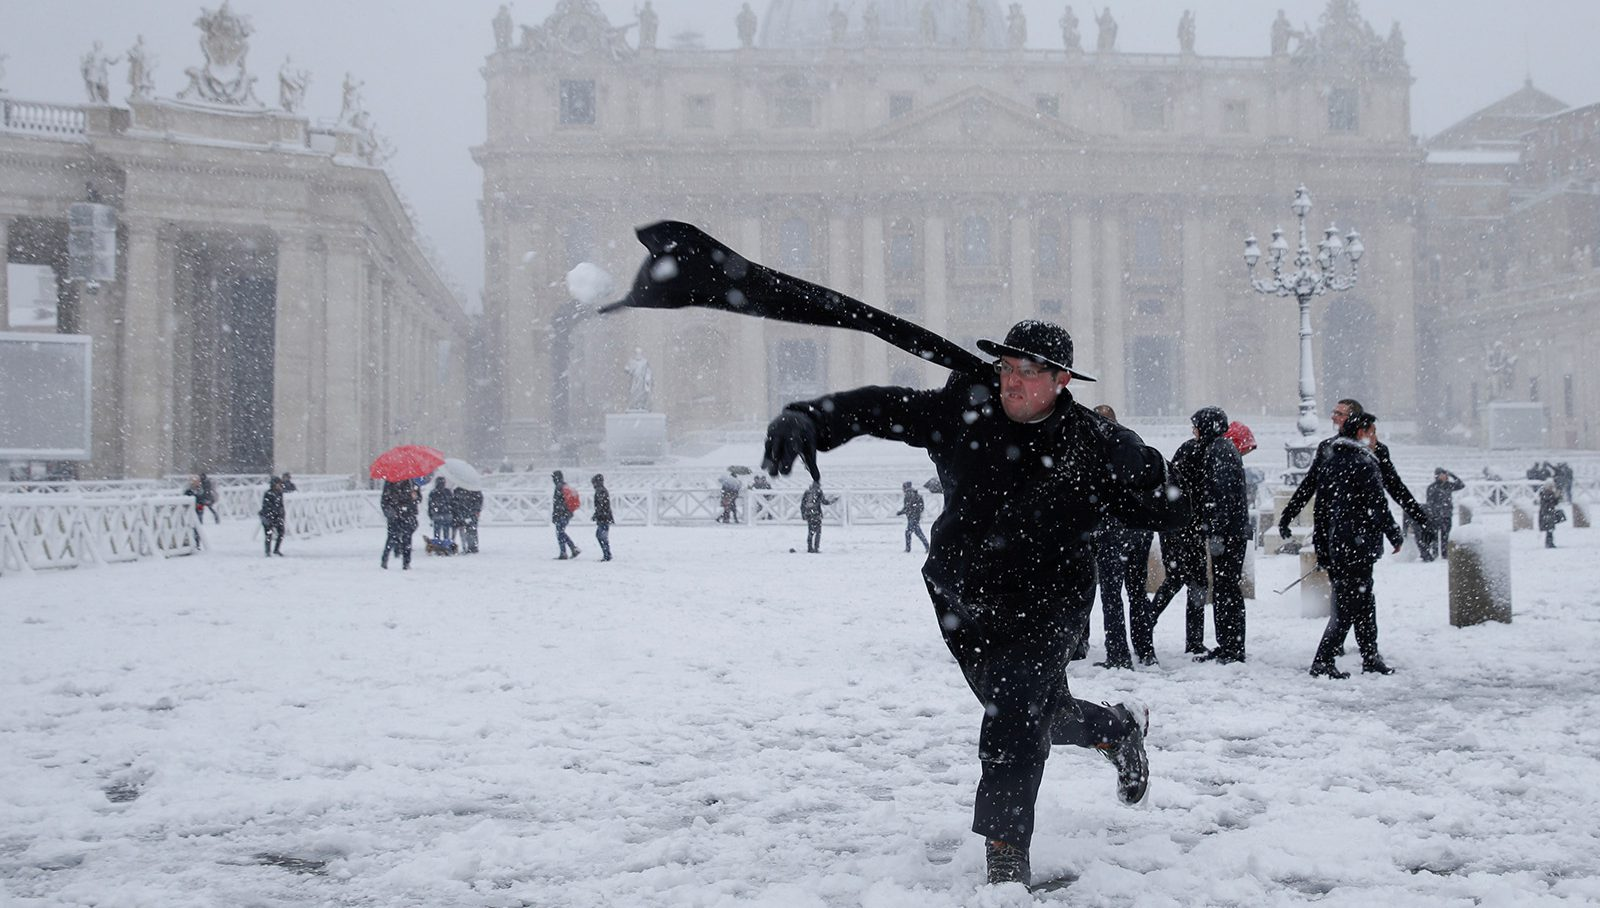 Snow Falls in Rome, and the Eternal City Takes a Holiday